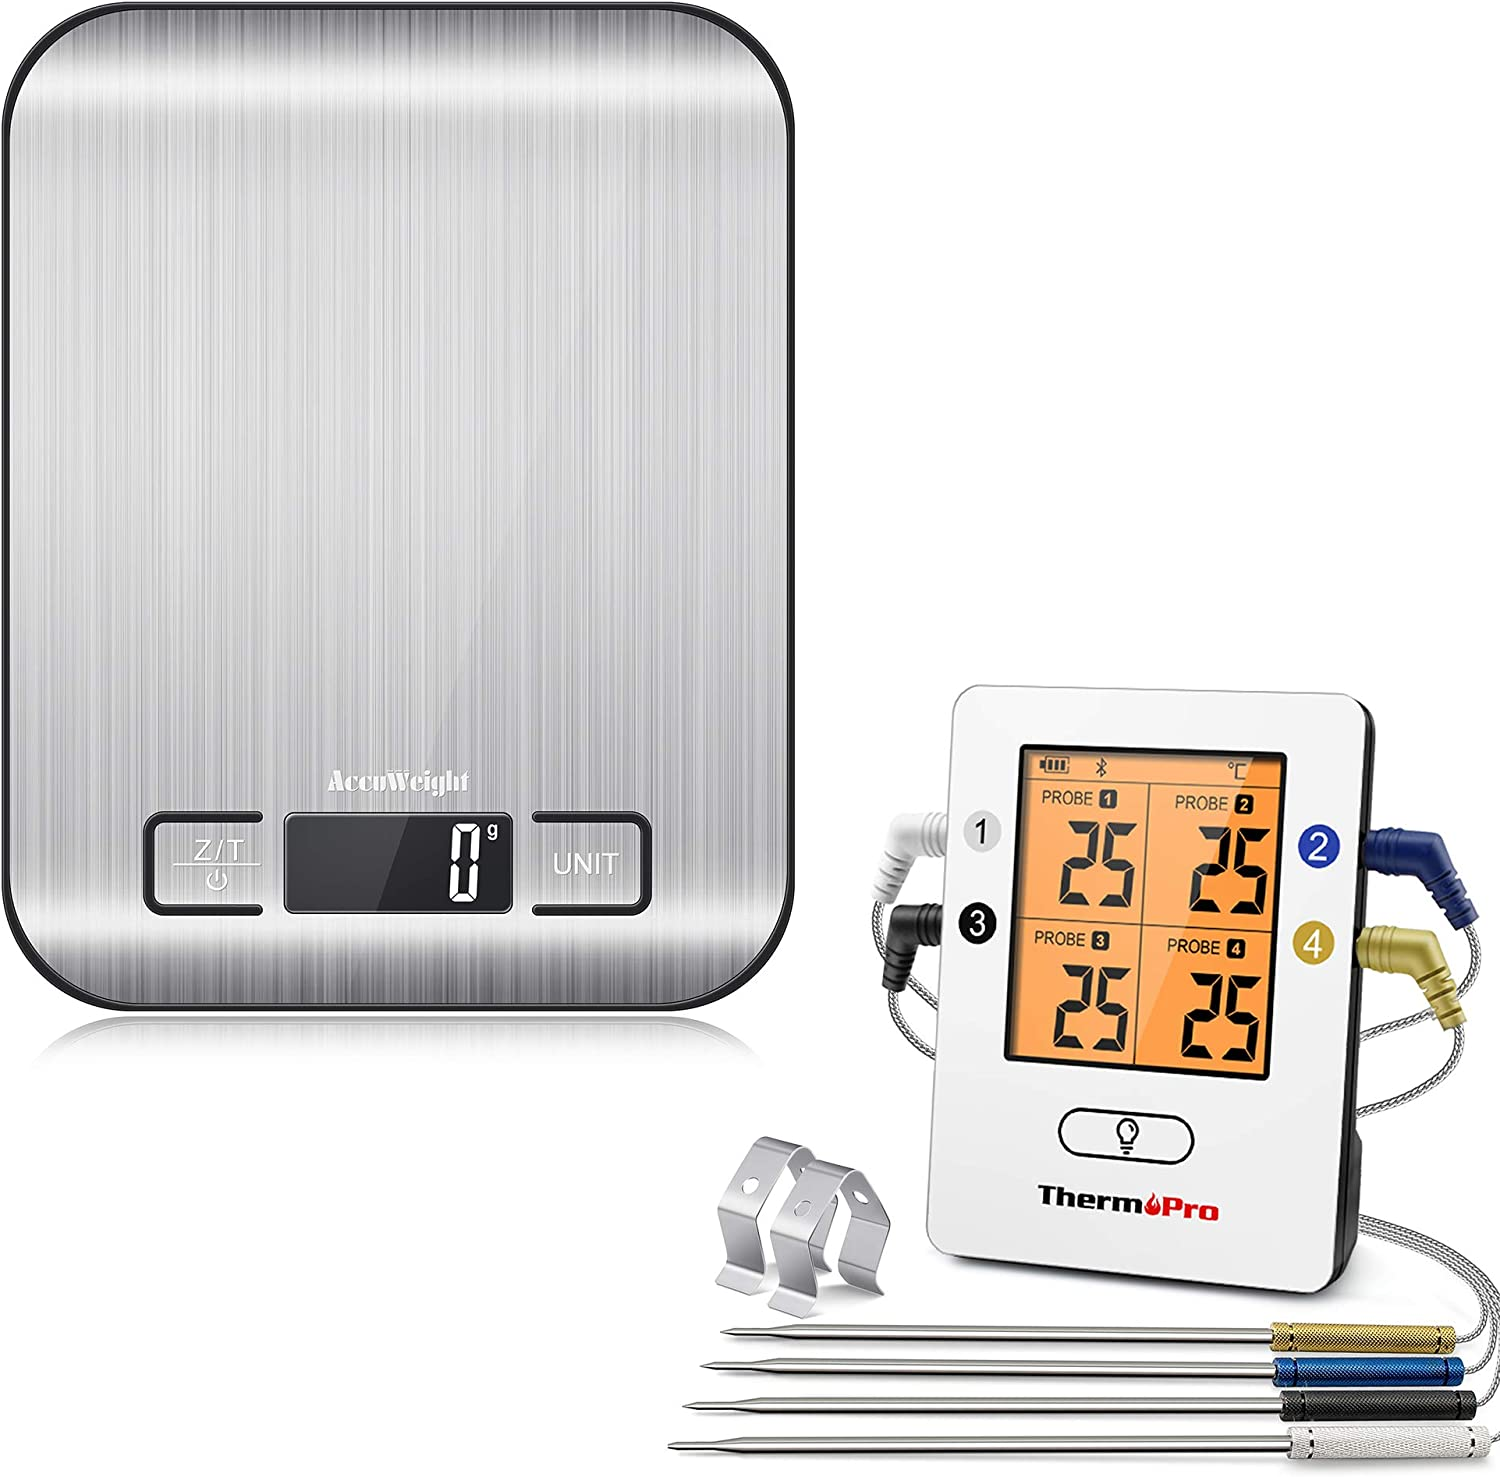 ThermoPro TP25 Wireless Direct stock discount Max 83% OFF Bluetooth +AccuWeight Thermometer Meat 2